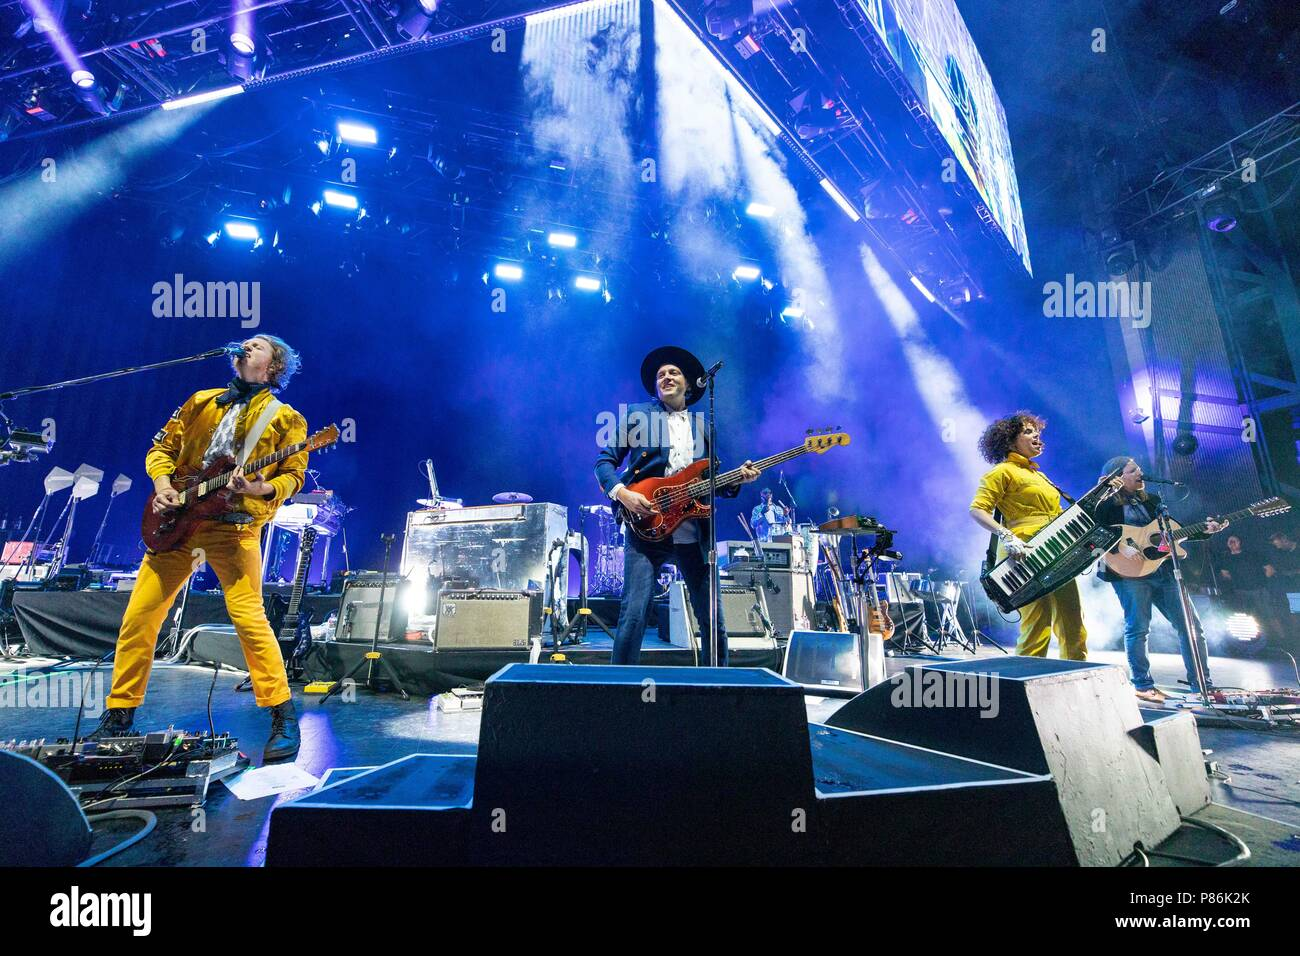 Milwaukee, Wisconsin, USA. 8th July, 2018. RICHARD REED PARRY, WIN BUTLER, REGINE CHASSAGNE and TIM KINGSBURY of Arcade Fire during Summerfest Music Festival at Henry Maier Festival Park in Milwaukee, Wisconsin Credit: Daniel DeSlover/ZUMA Wire/Alamy Live News - Stock Image